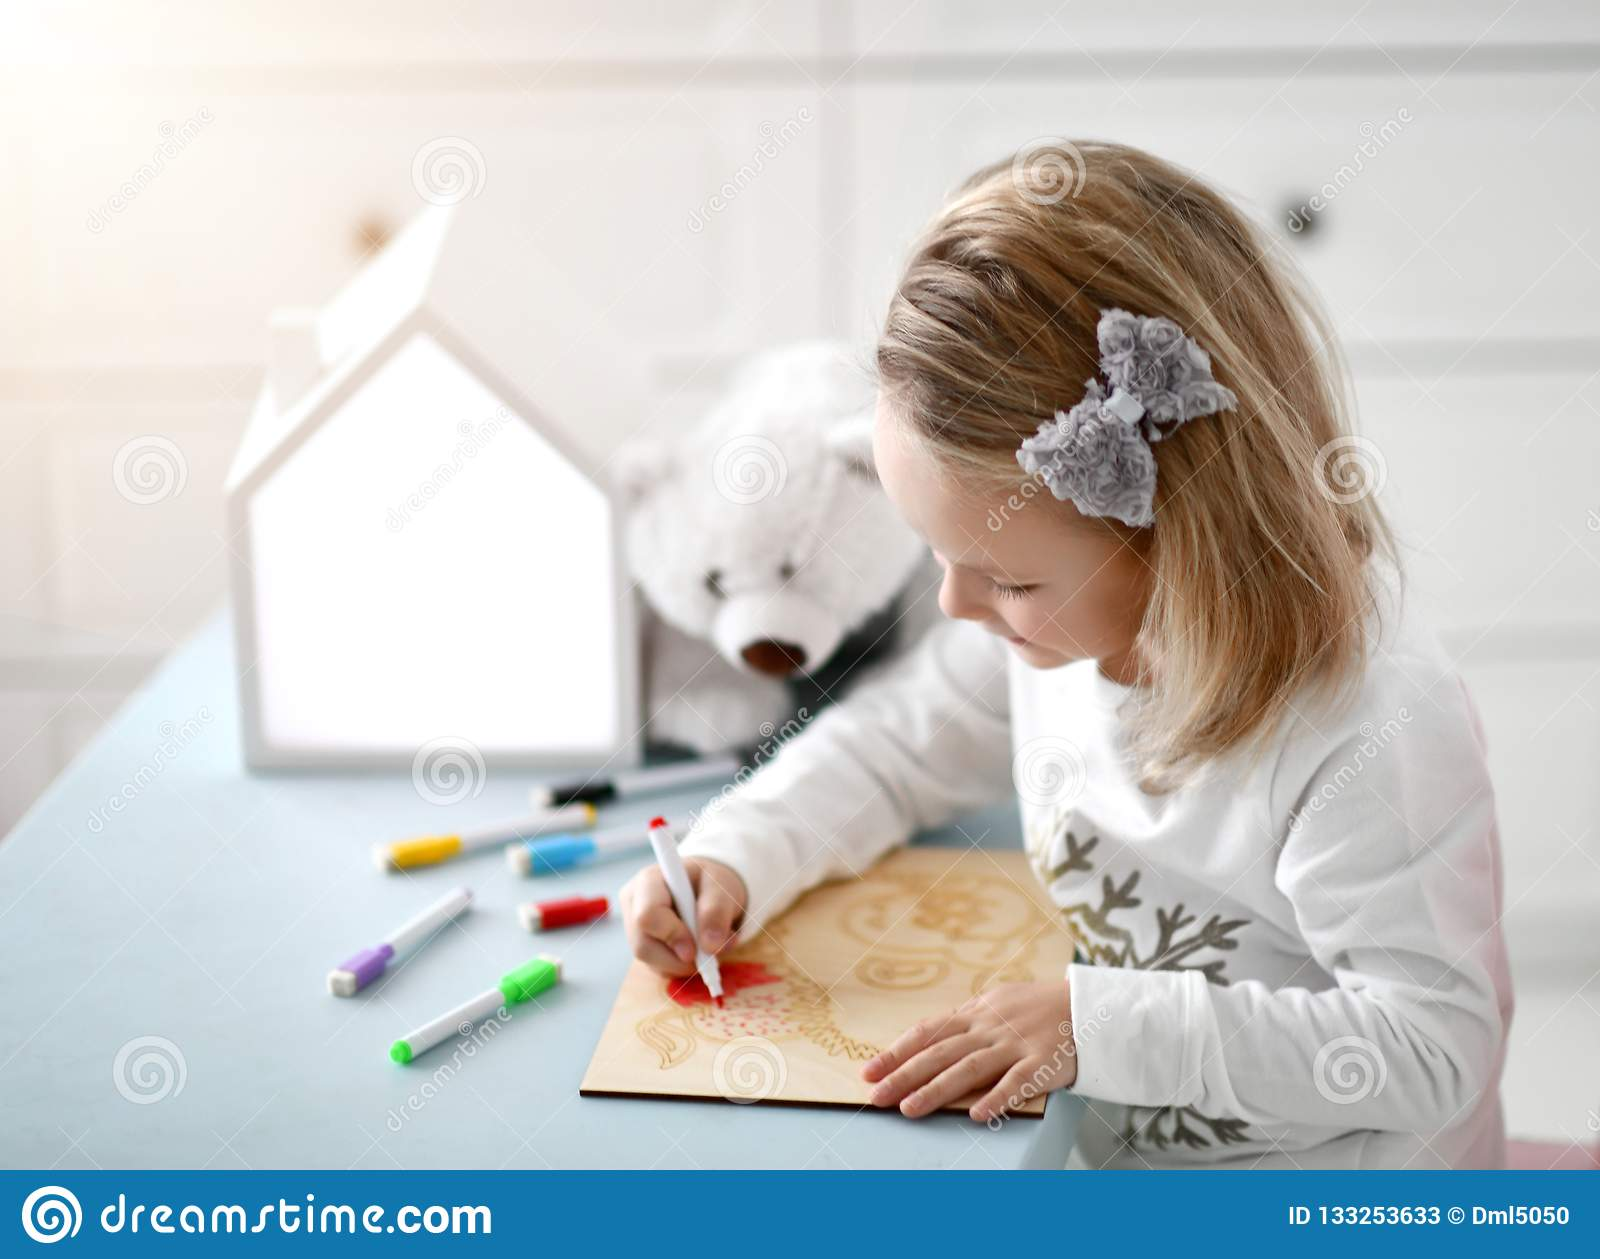 Happy child baby kid girl kindergarten drawing education with colorful markers at interior room